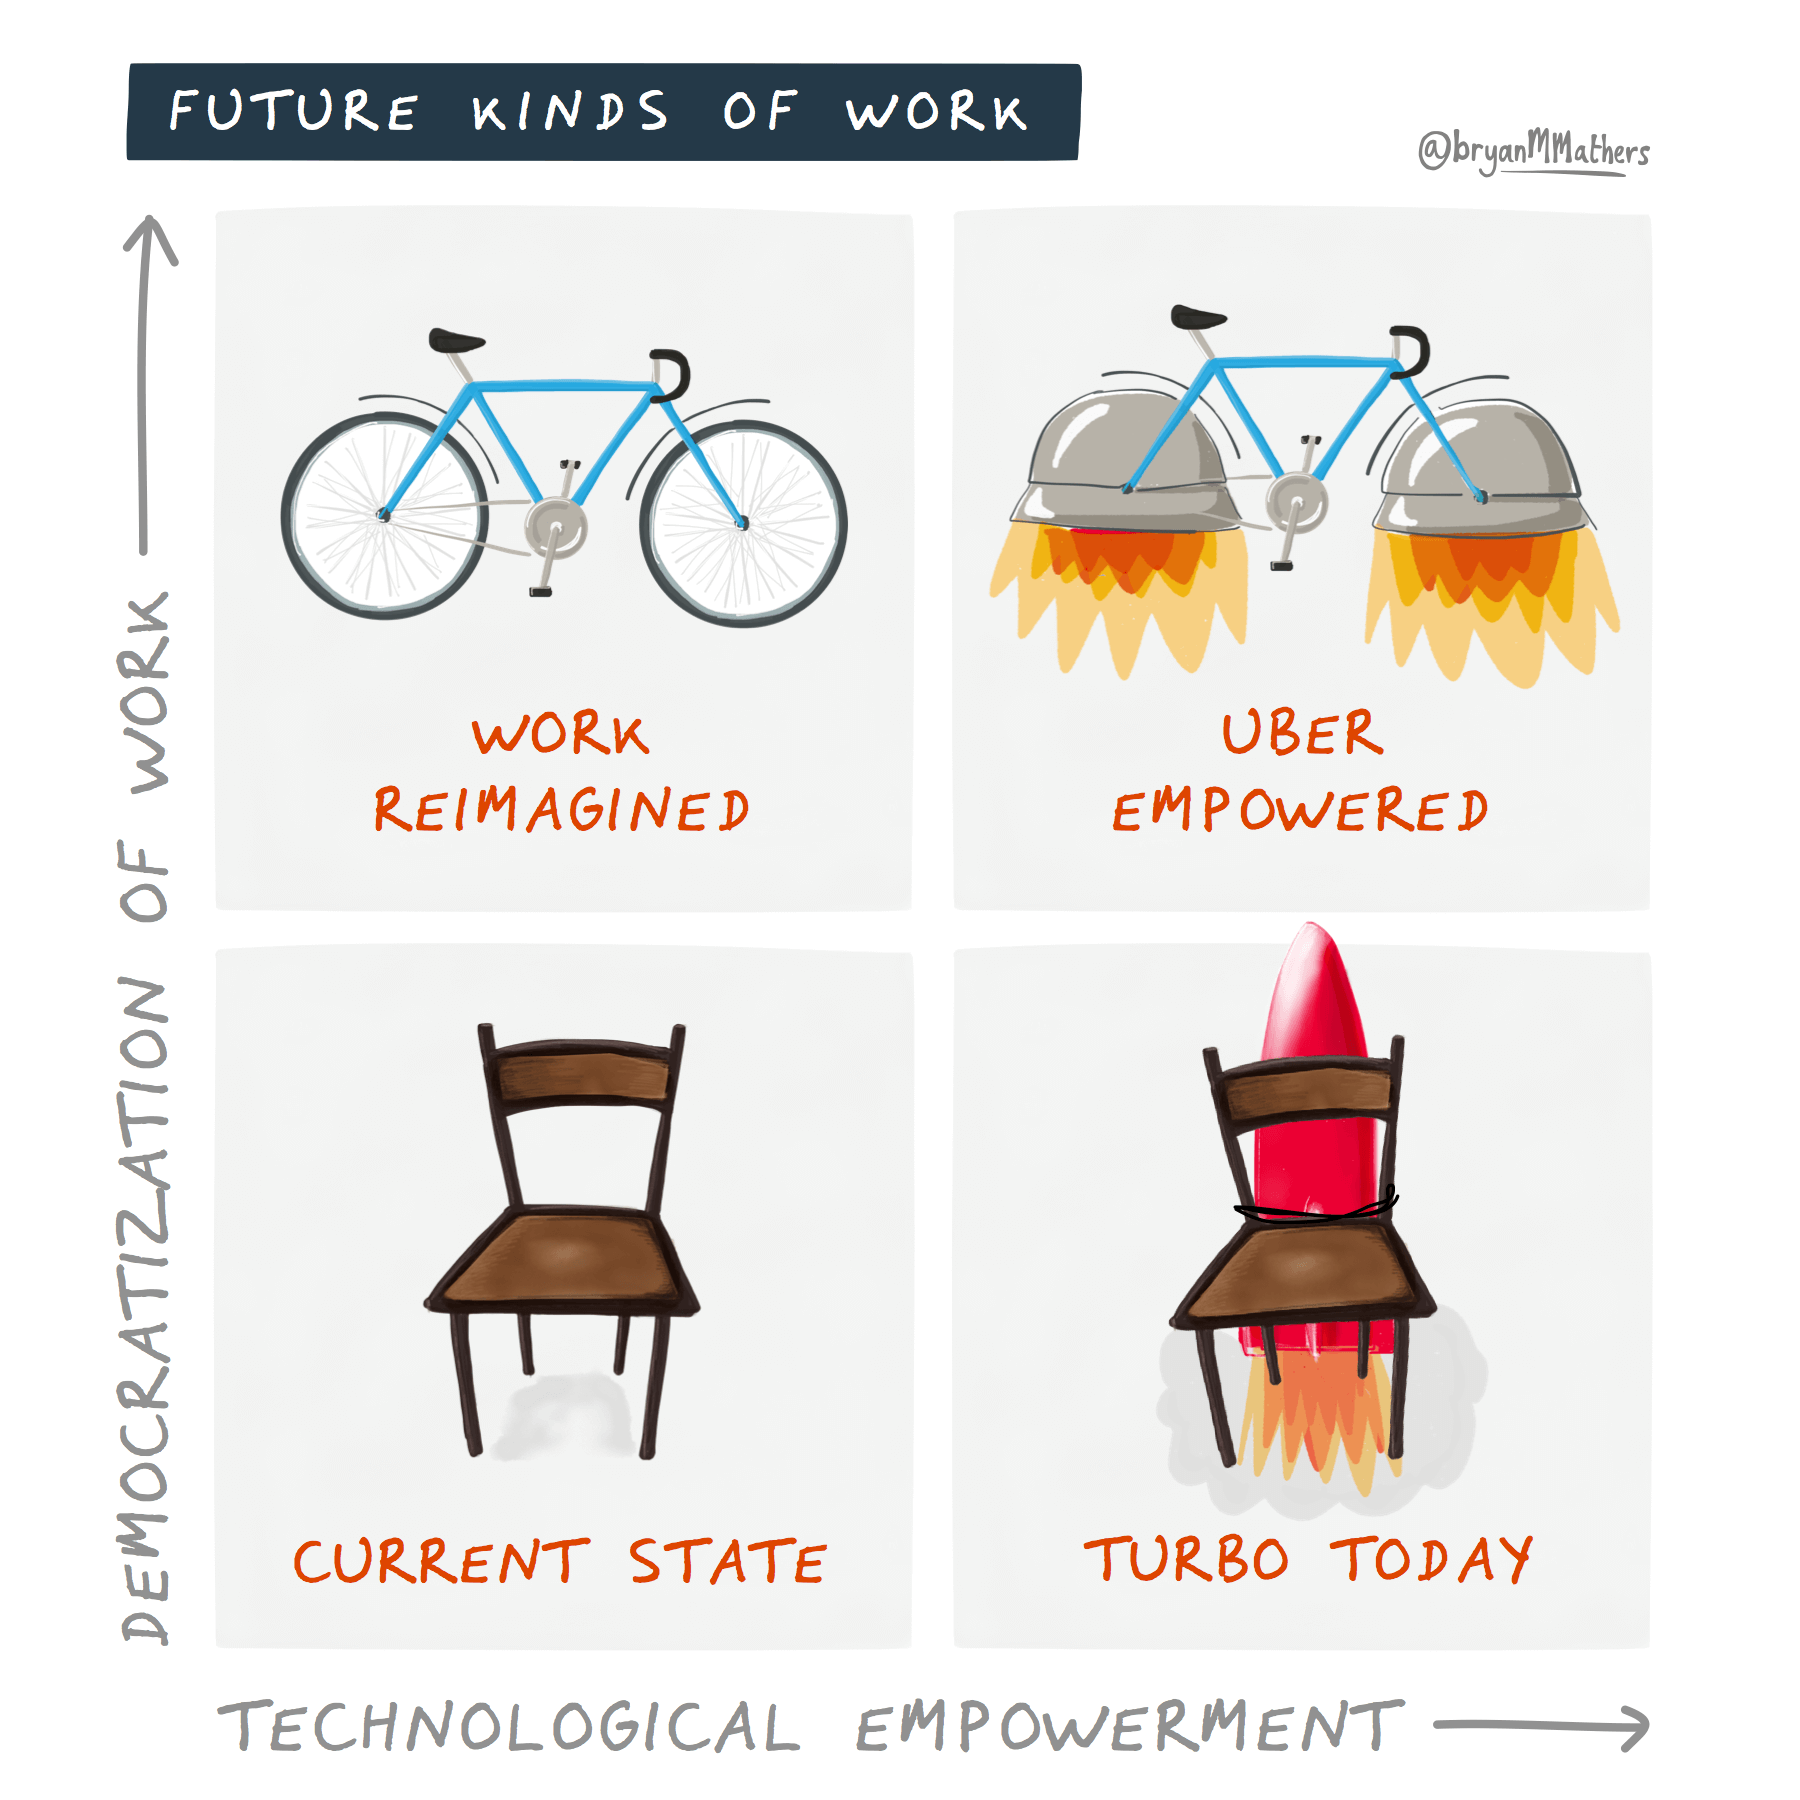 Future Types of Work